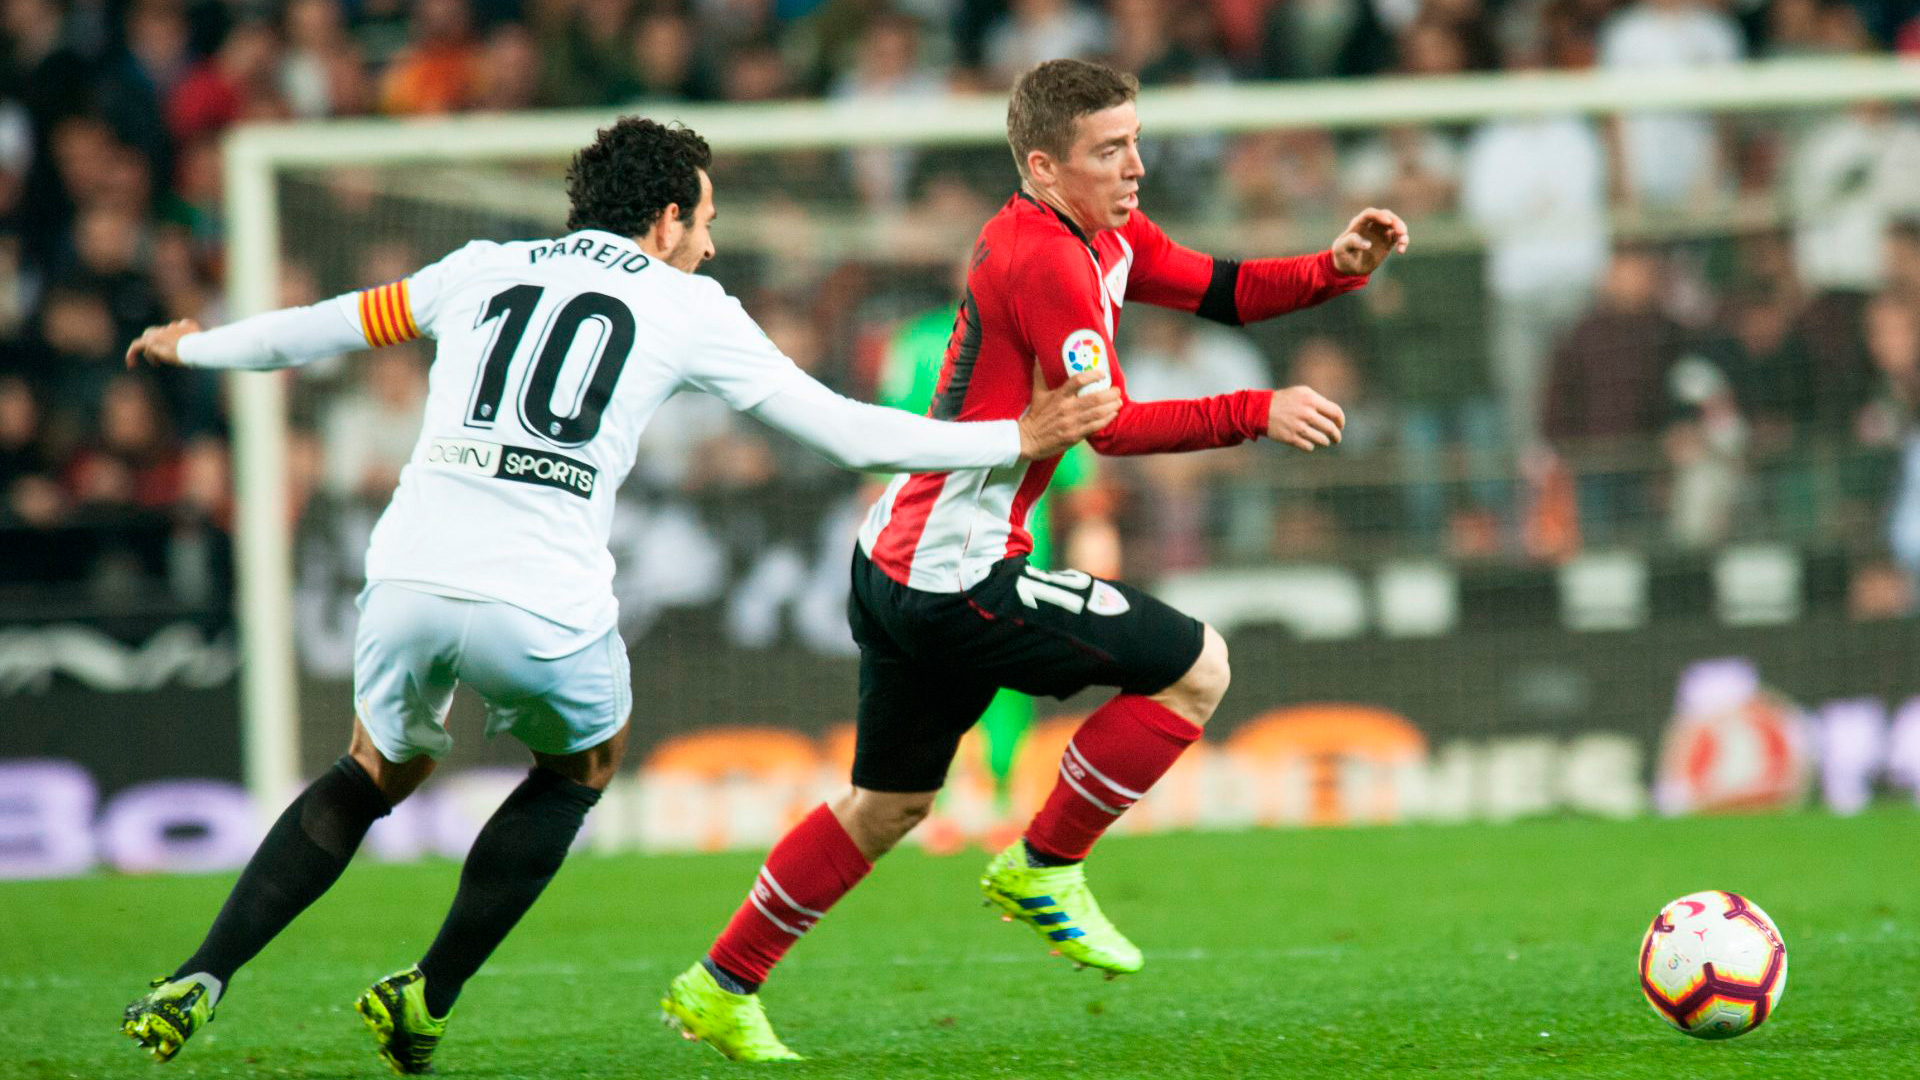 The most recent Valencia – Athletic